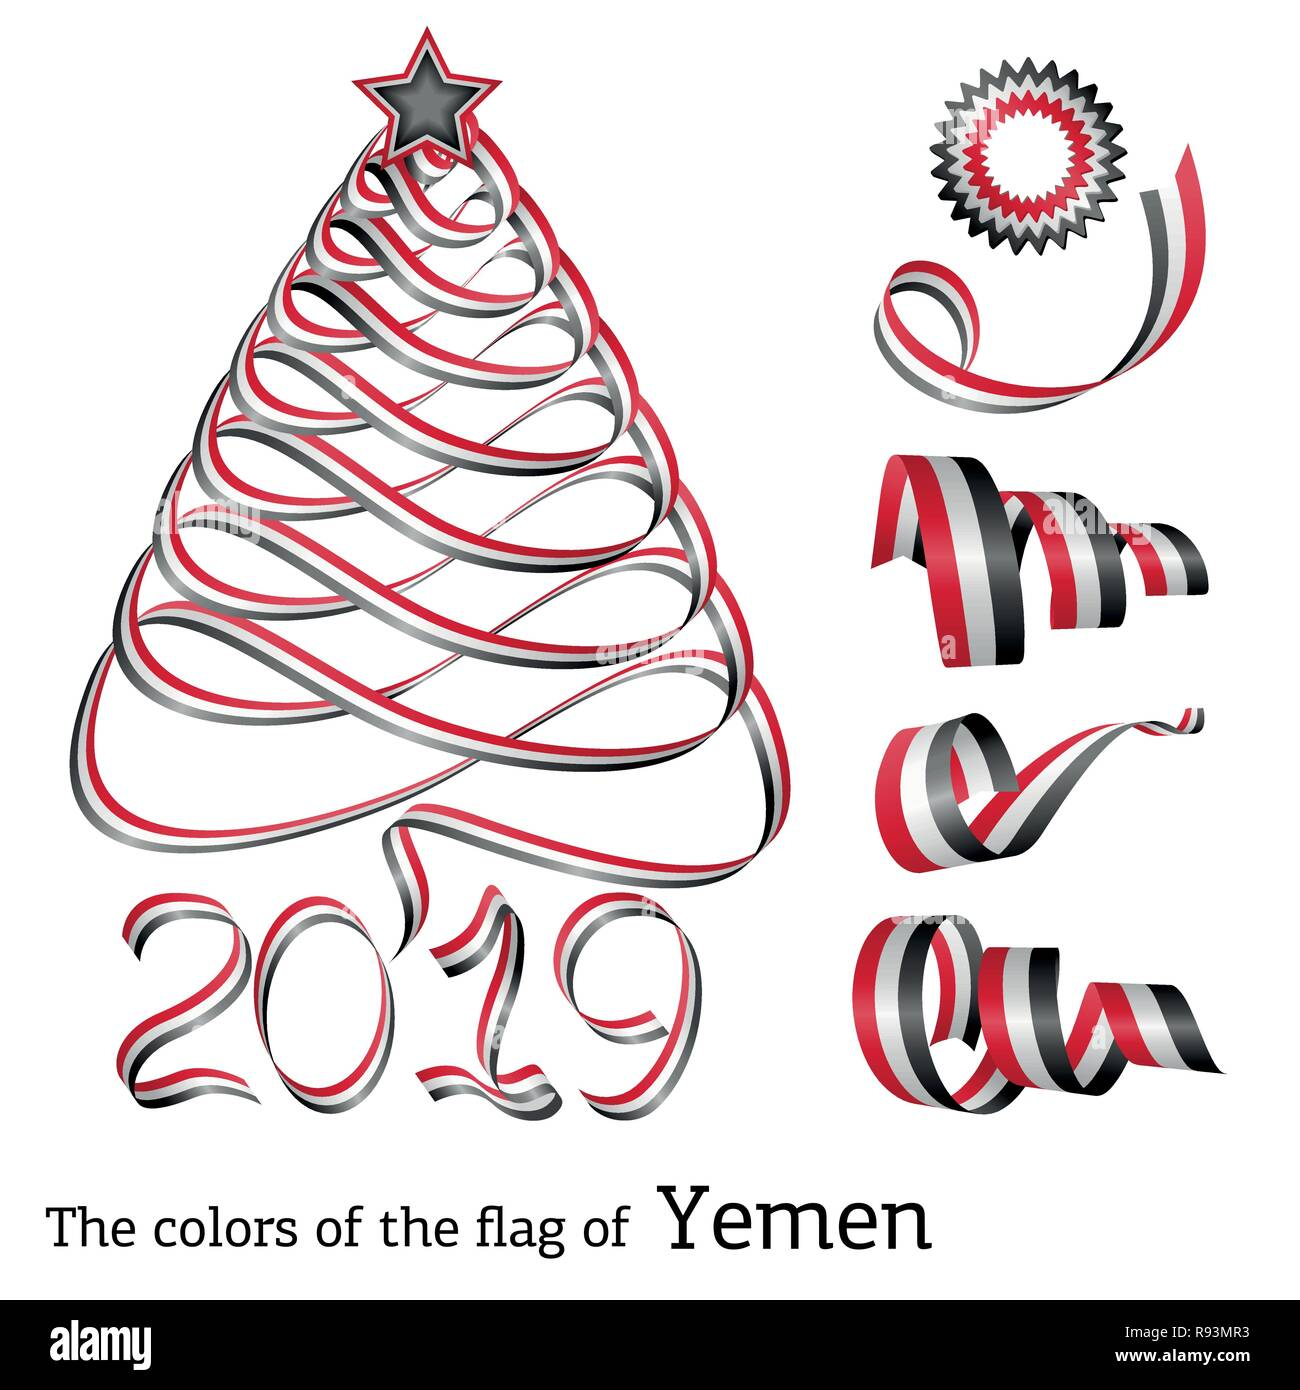 Ribbon in the shape of a Christmas tree with the colors of the flag of Yemen - Stock Image